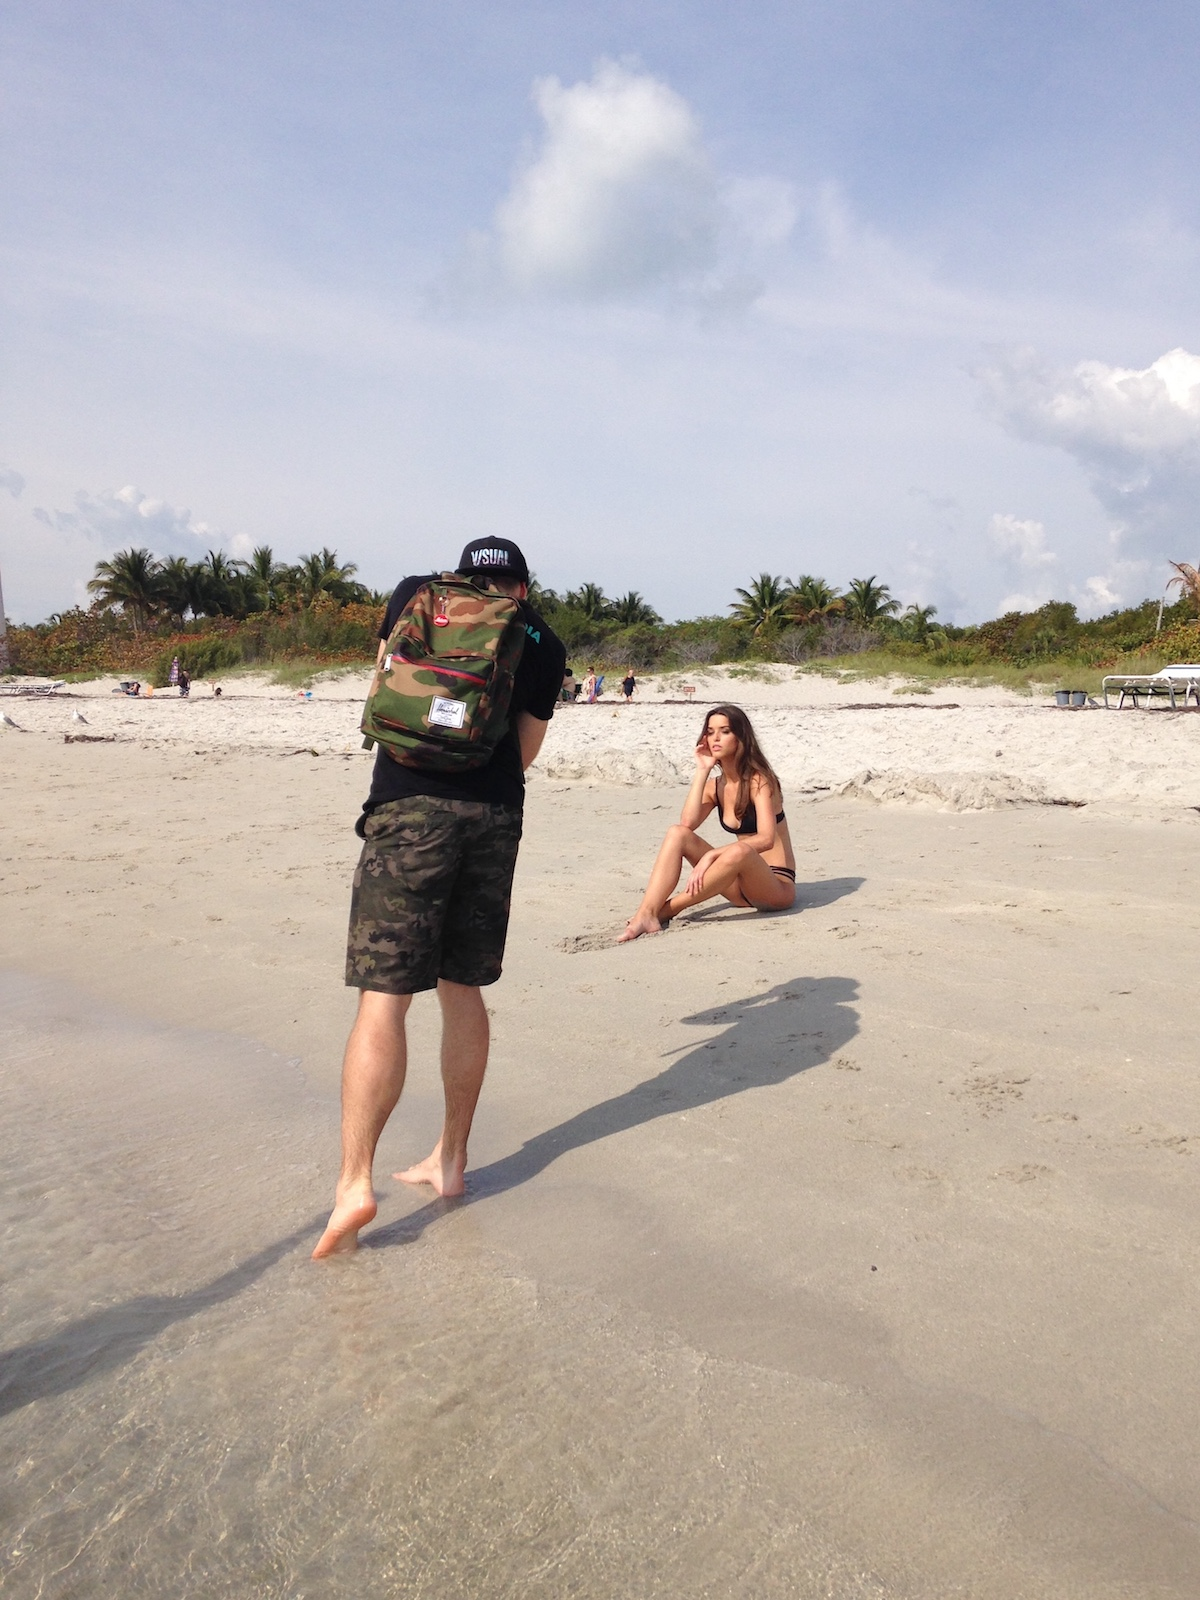 Gabe Media at the 2016 photoshoot photoshoot in Key Biscayne, Florida